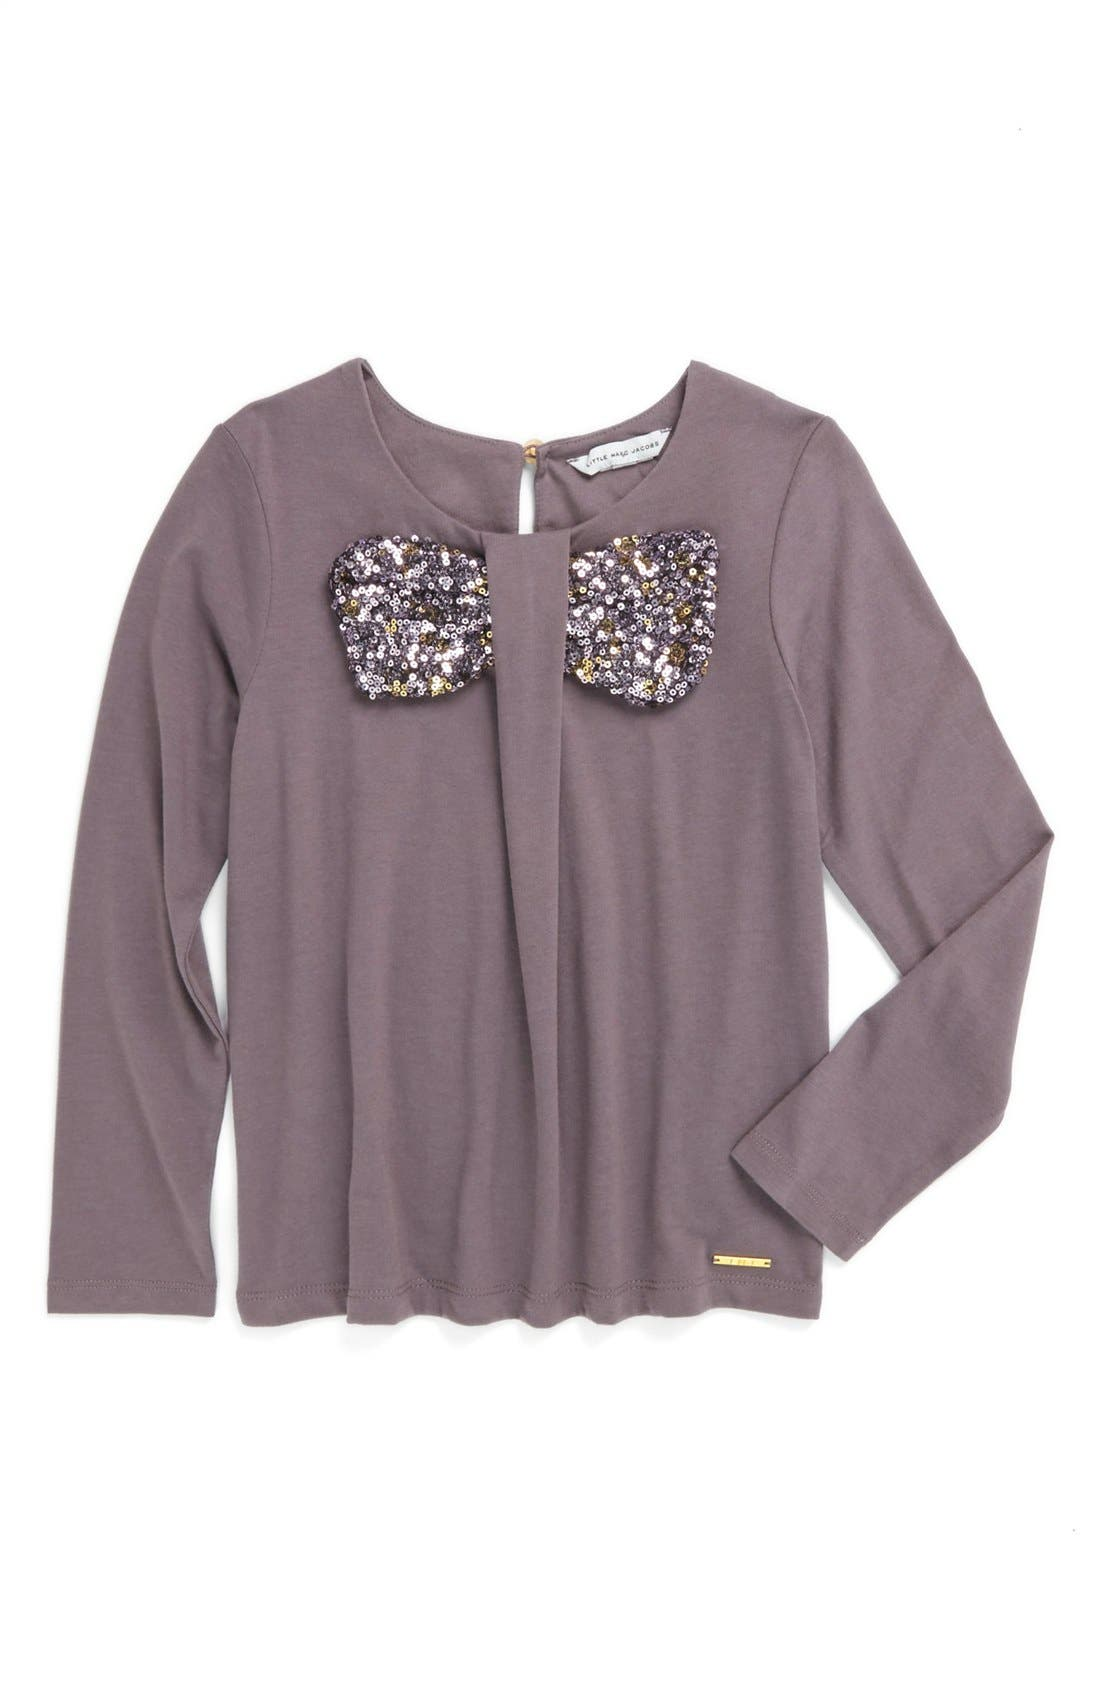 Alternate Image 1 Selected - LITTLE MARC JACOBS Sequin Bow Top (Toddler Girls, Little Girls & Big Girls)